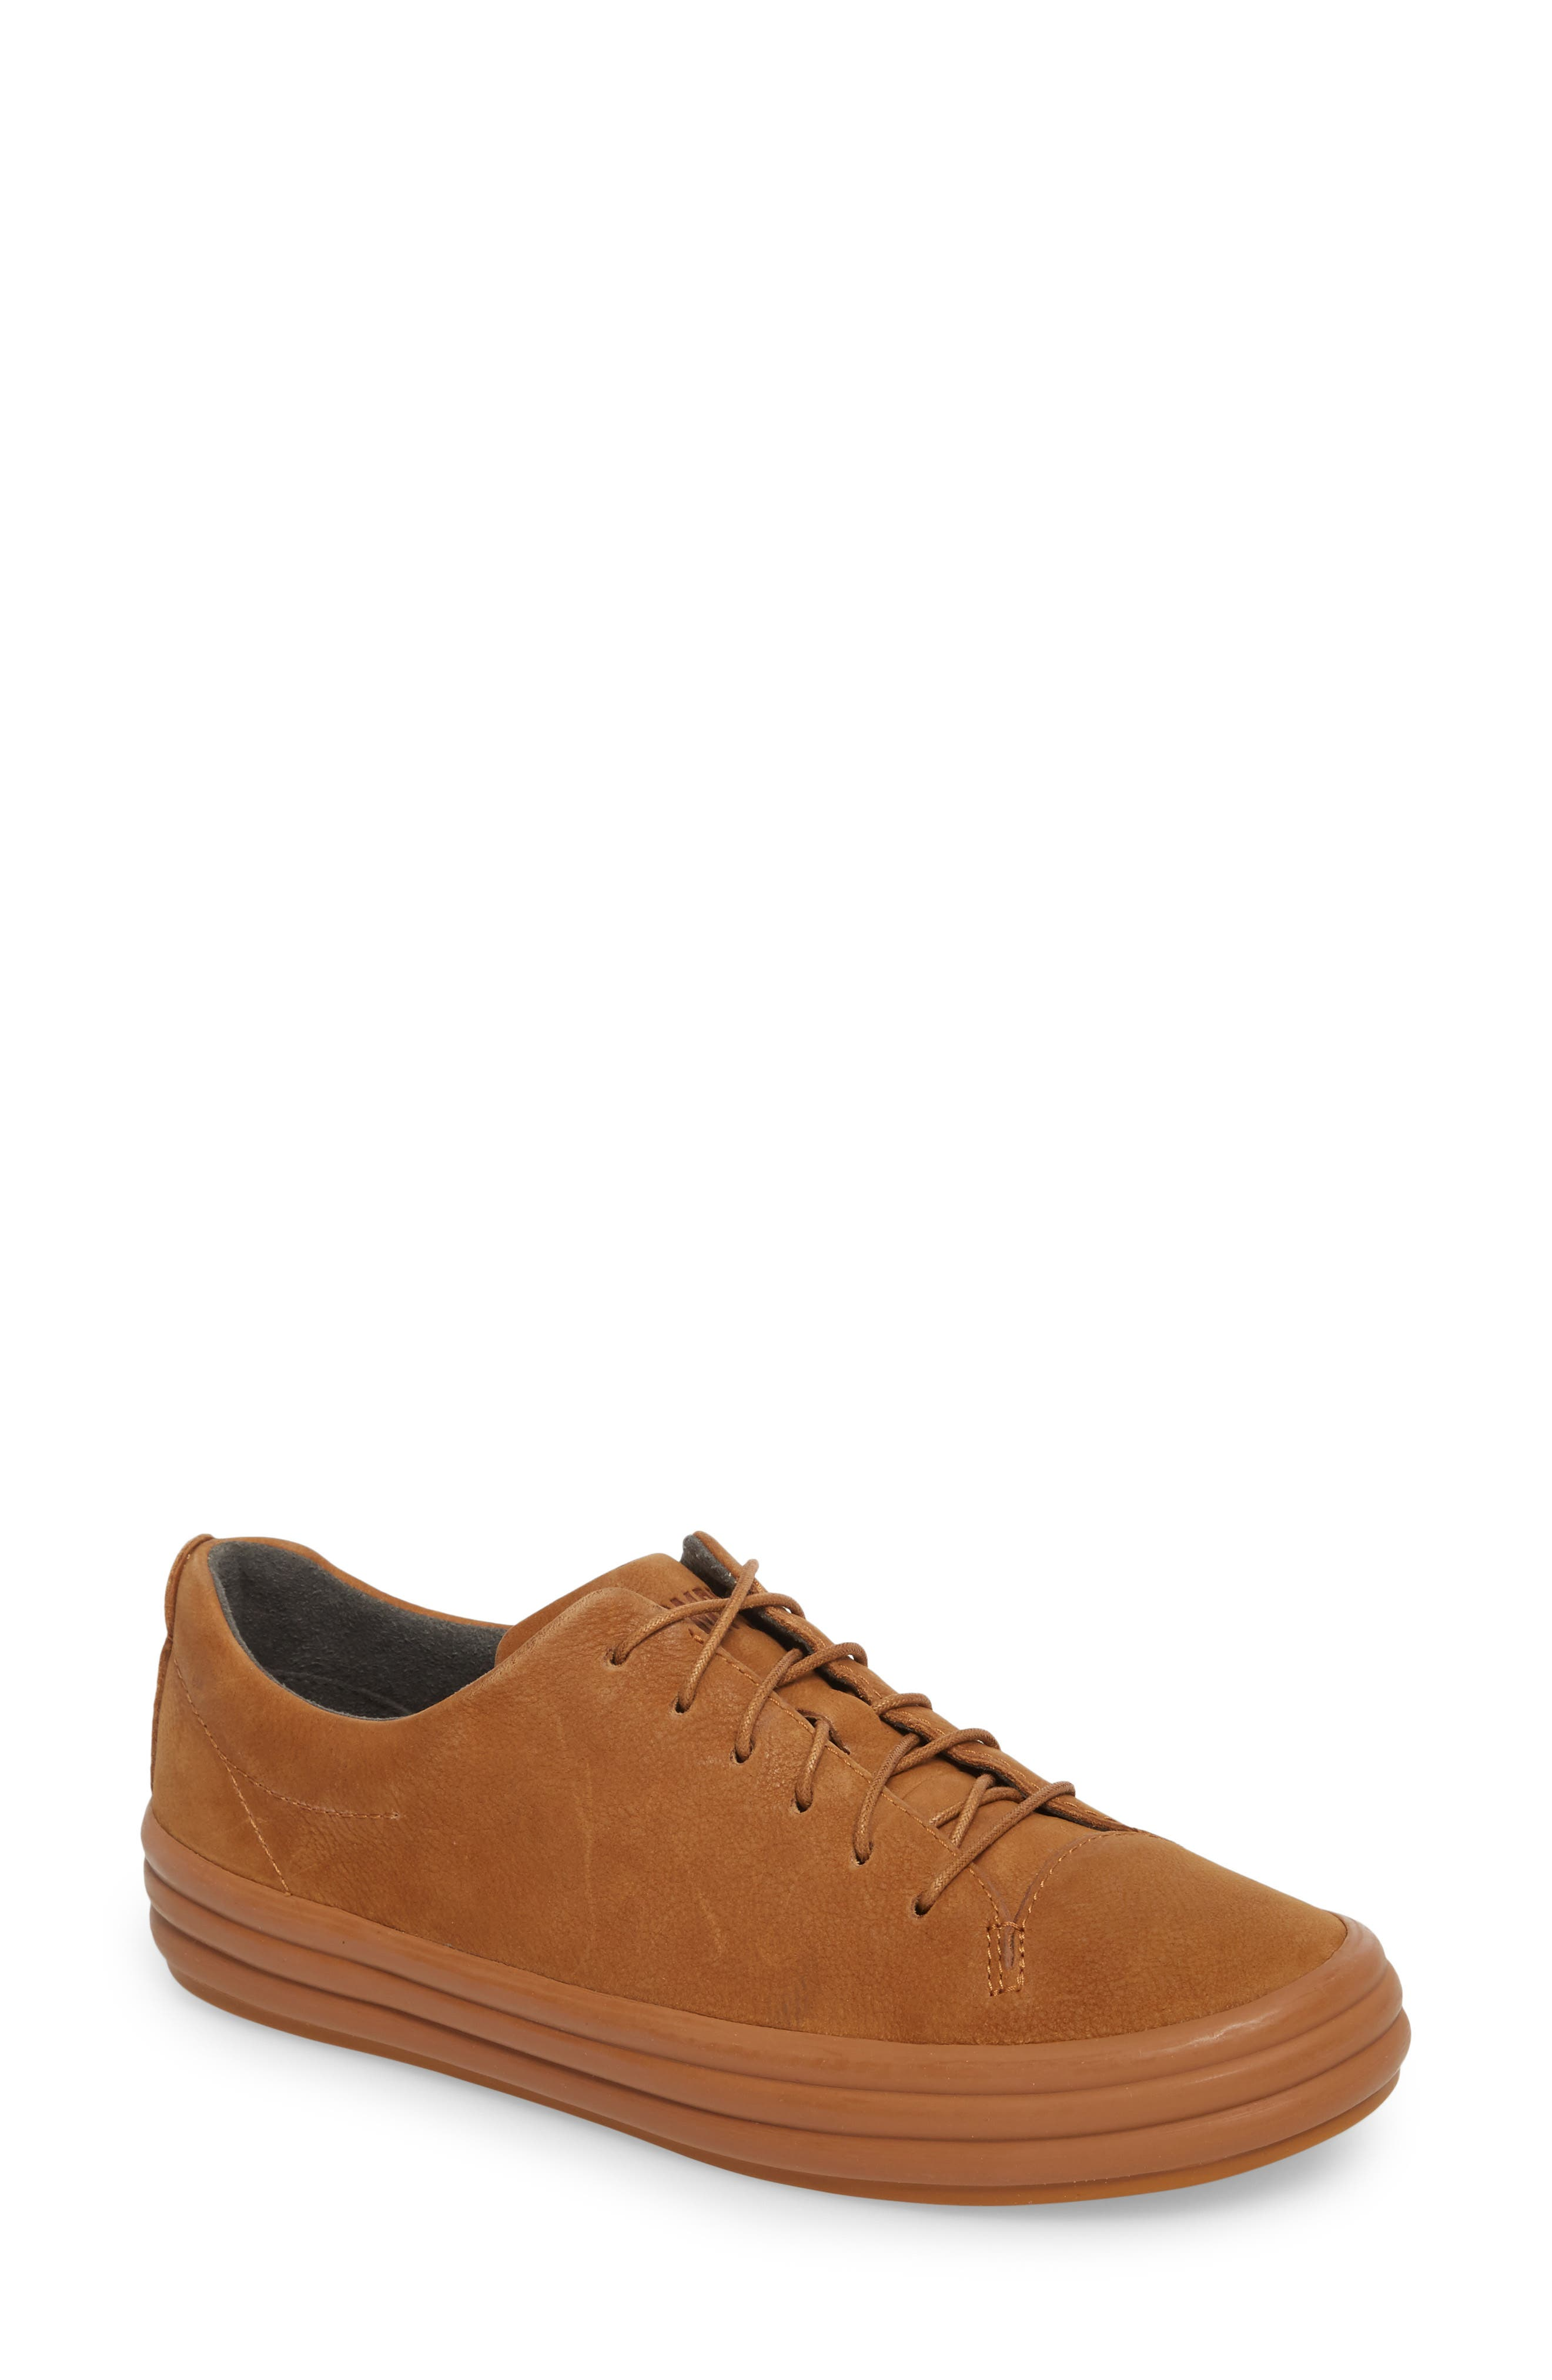 Hoops Sneaker,                         Main,                         color, Rust/ Copper Leather